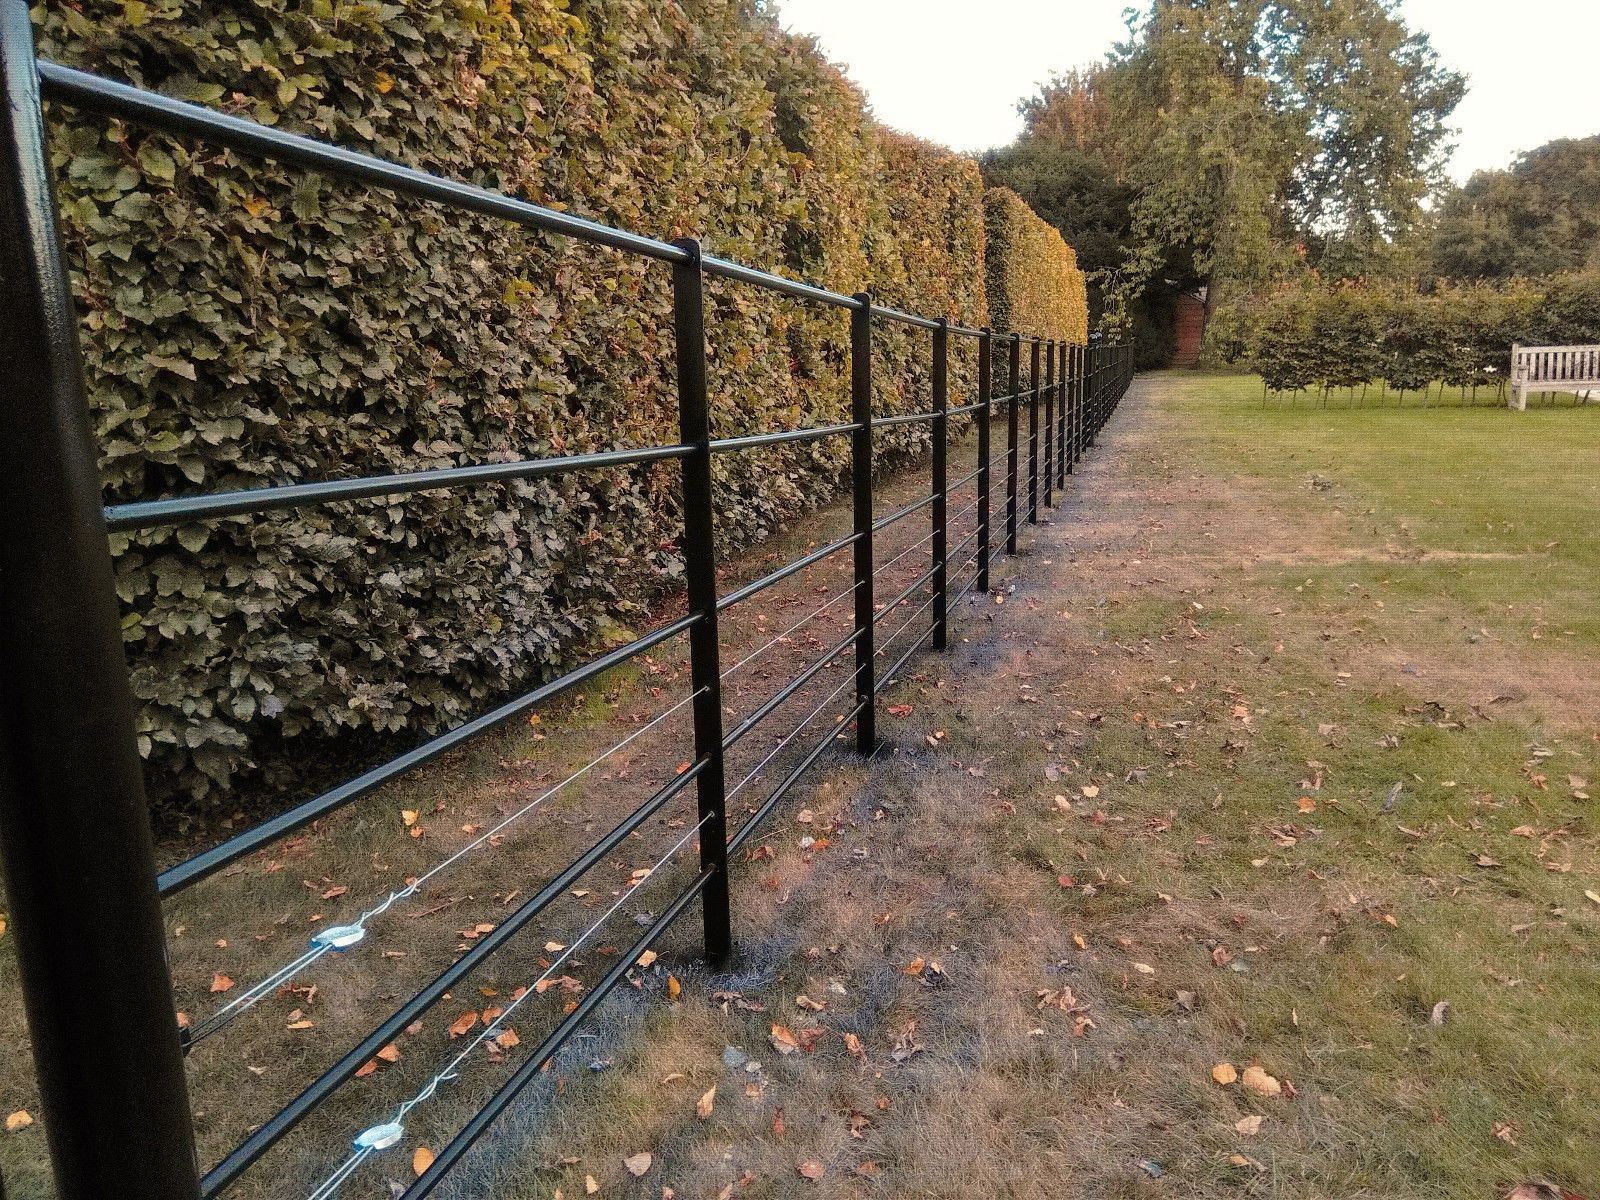 Estate Fencing, Heavy Dty 1.2m Steel, Metal Railings, Wrought Iron Park  Fencing